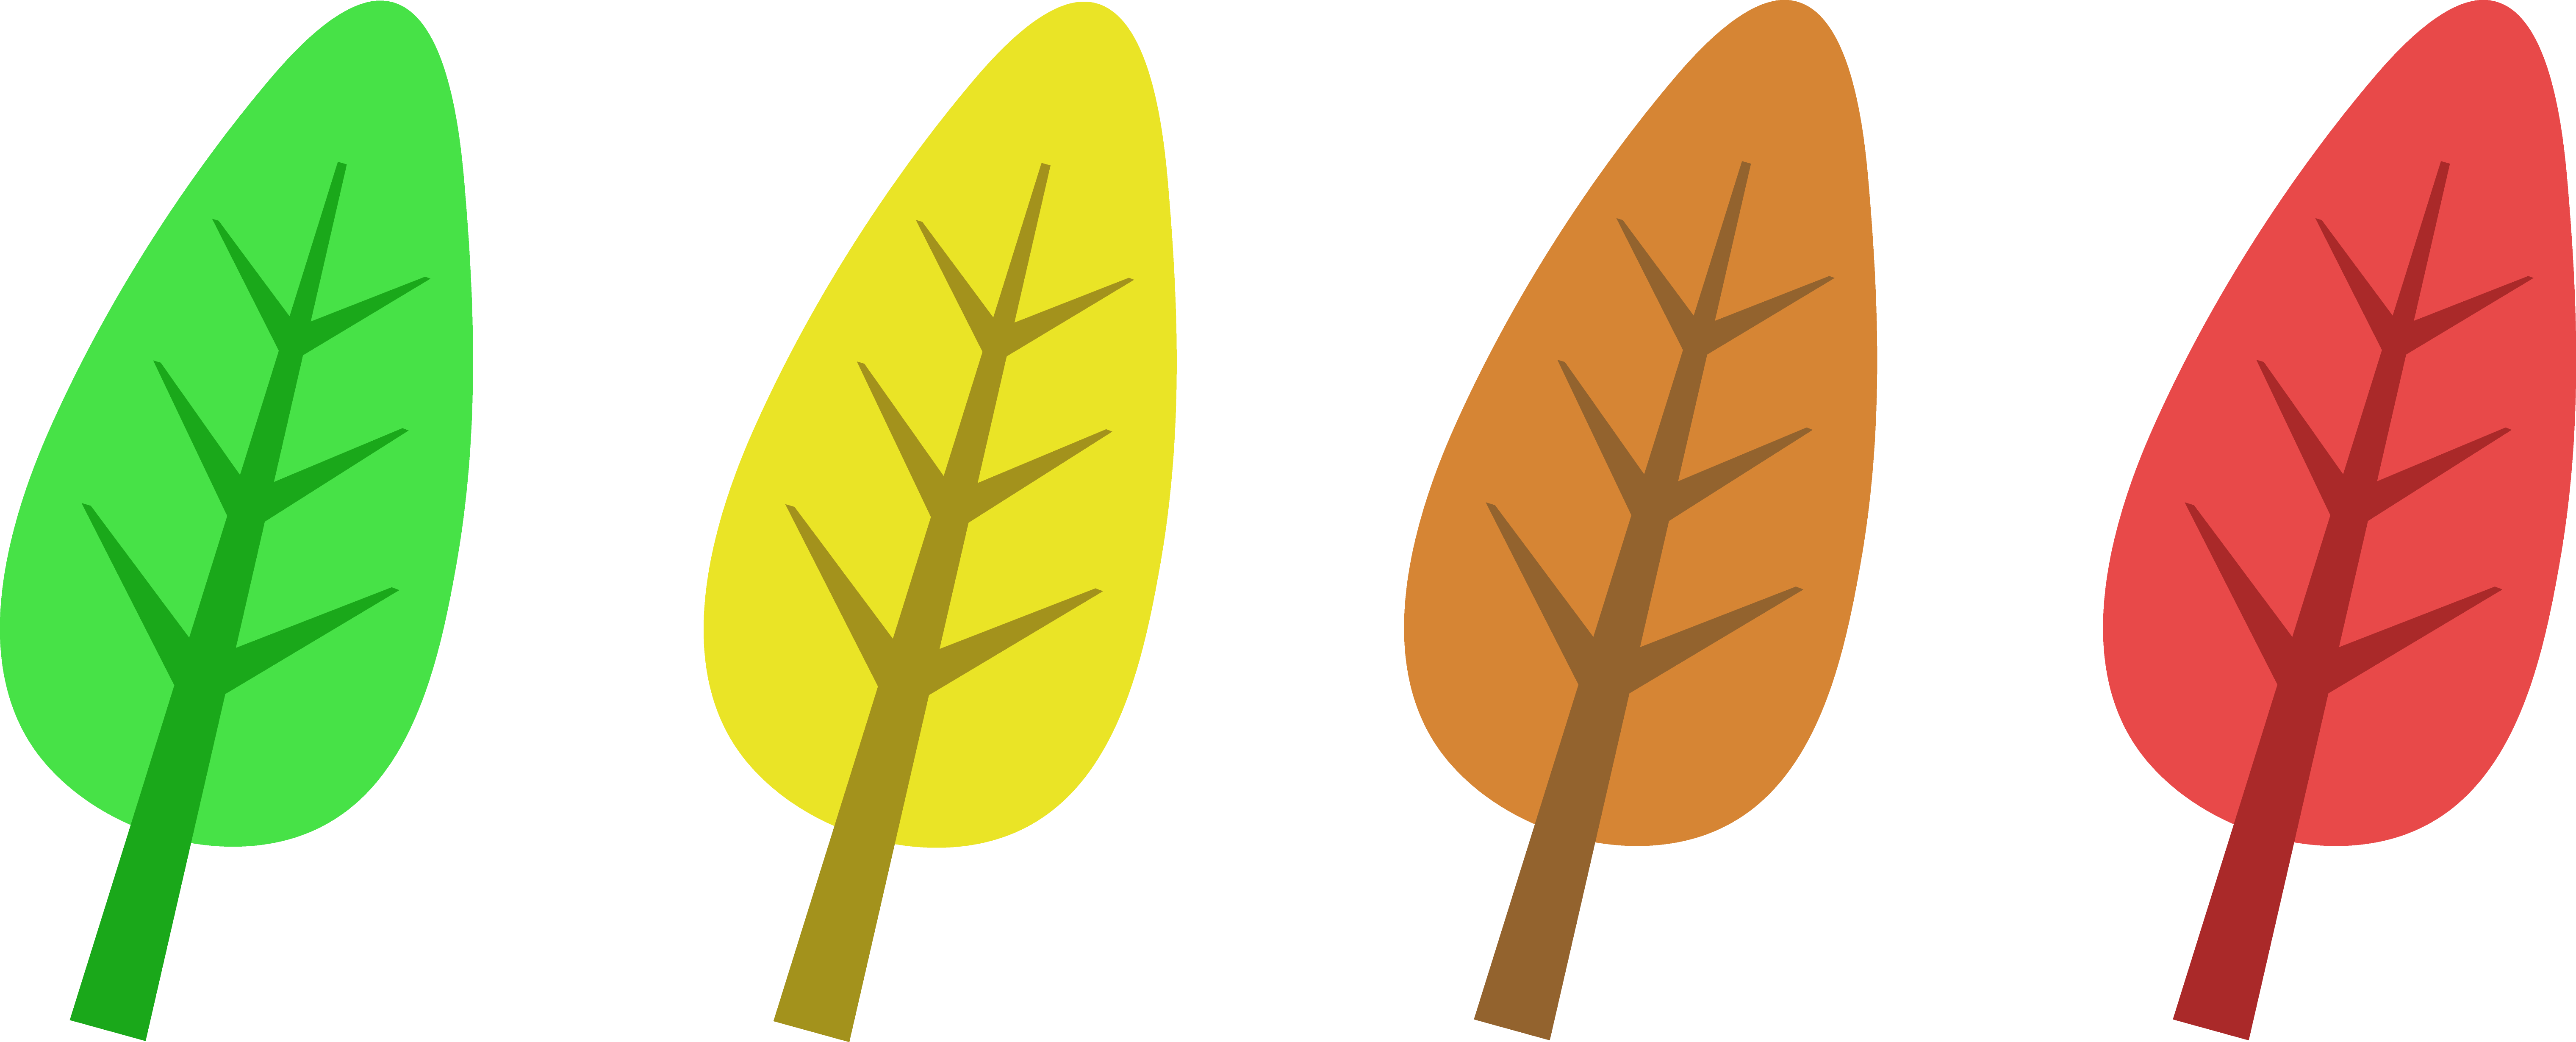 Leaf Clip Art Free | Clipart Panda - Free Clipart Images Leaves Clipart